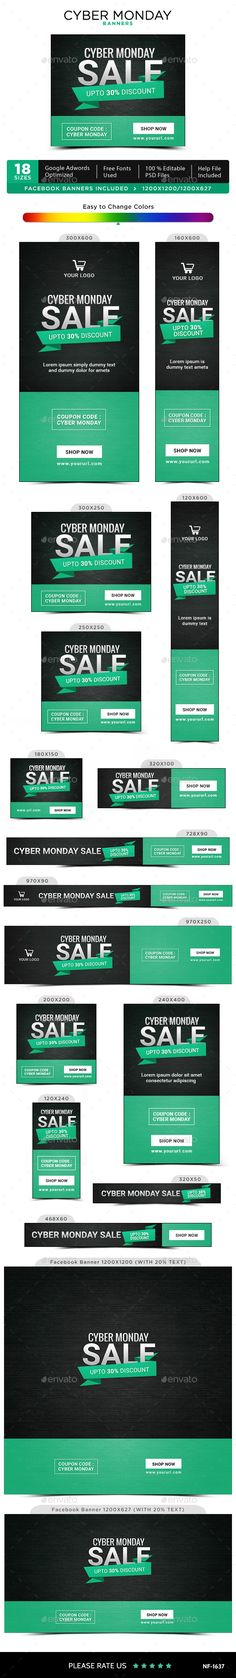 Cyber Monday Banners Design Template - Banners & Ads Web Elements Ads Banner Design Template PSD. Download here: https://graphicriver.net/item/cyber-monday-banners/18902830?ref=yinkira